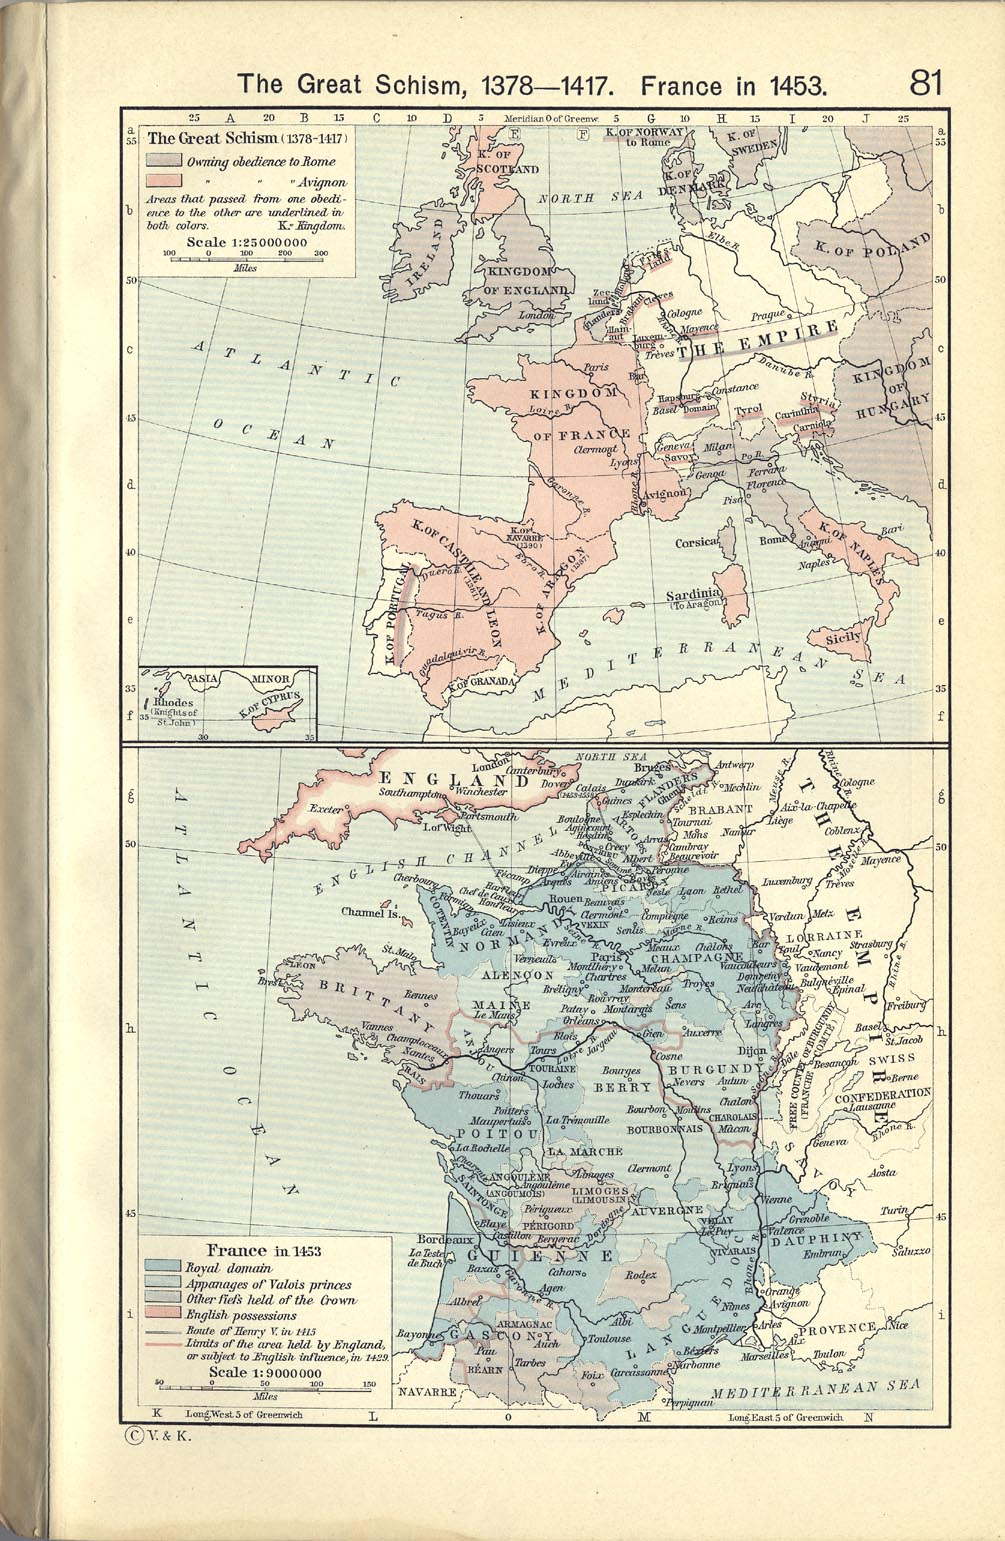 Map of France in 1453